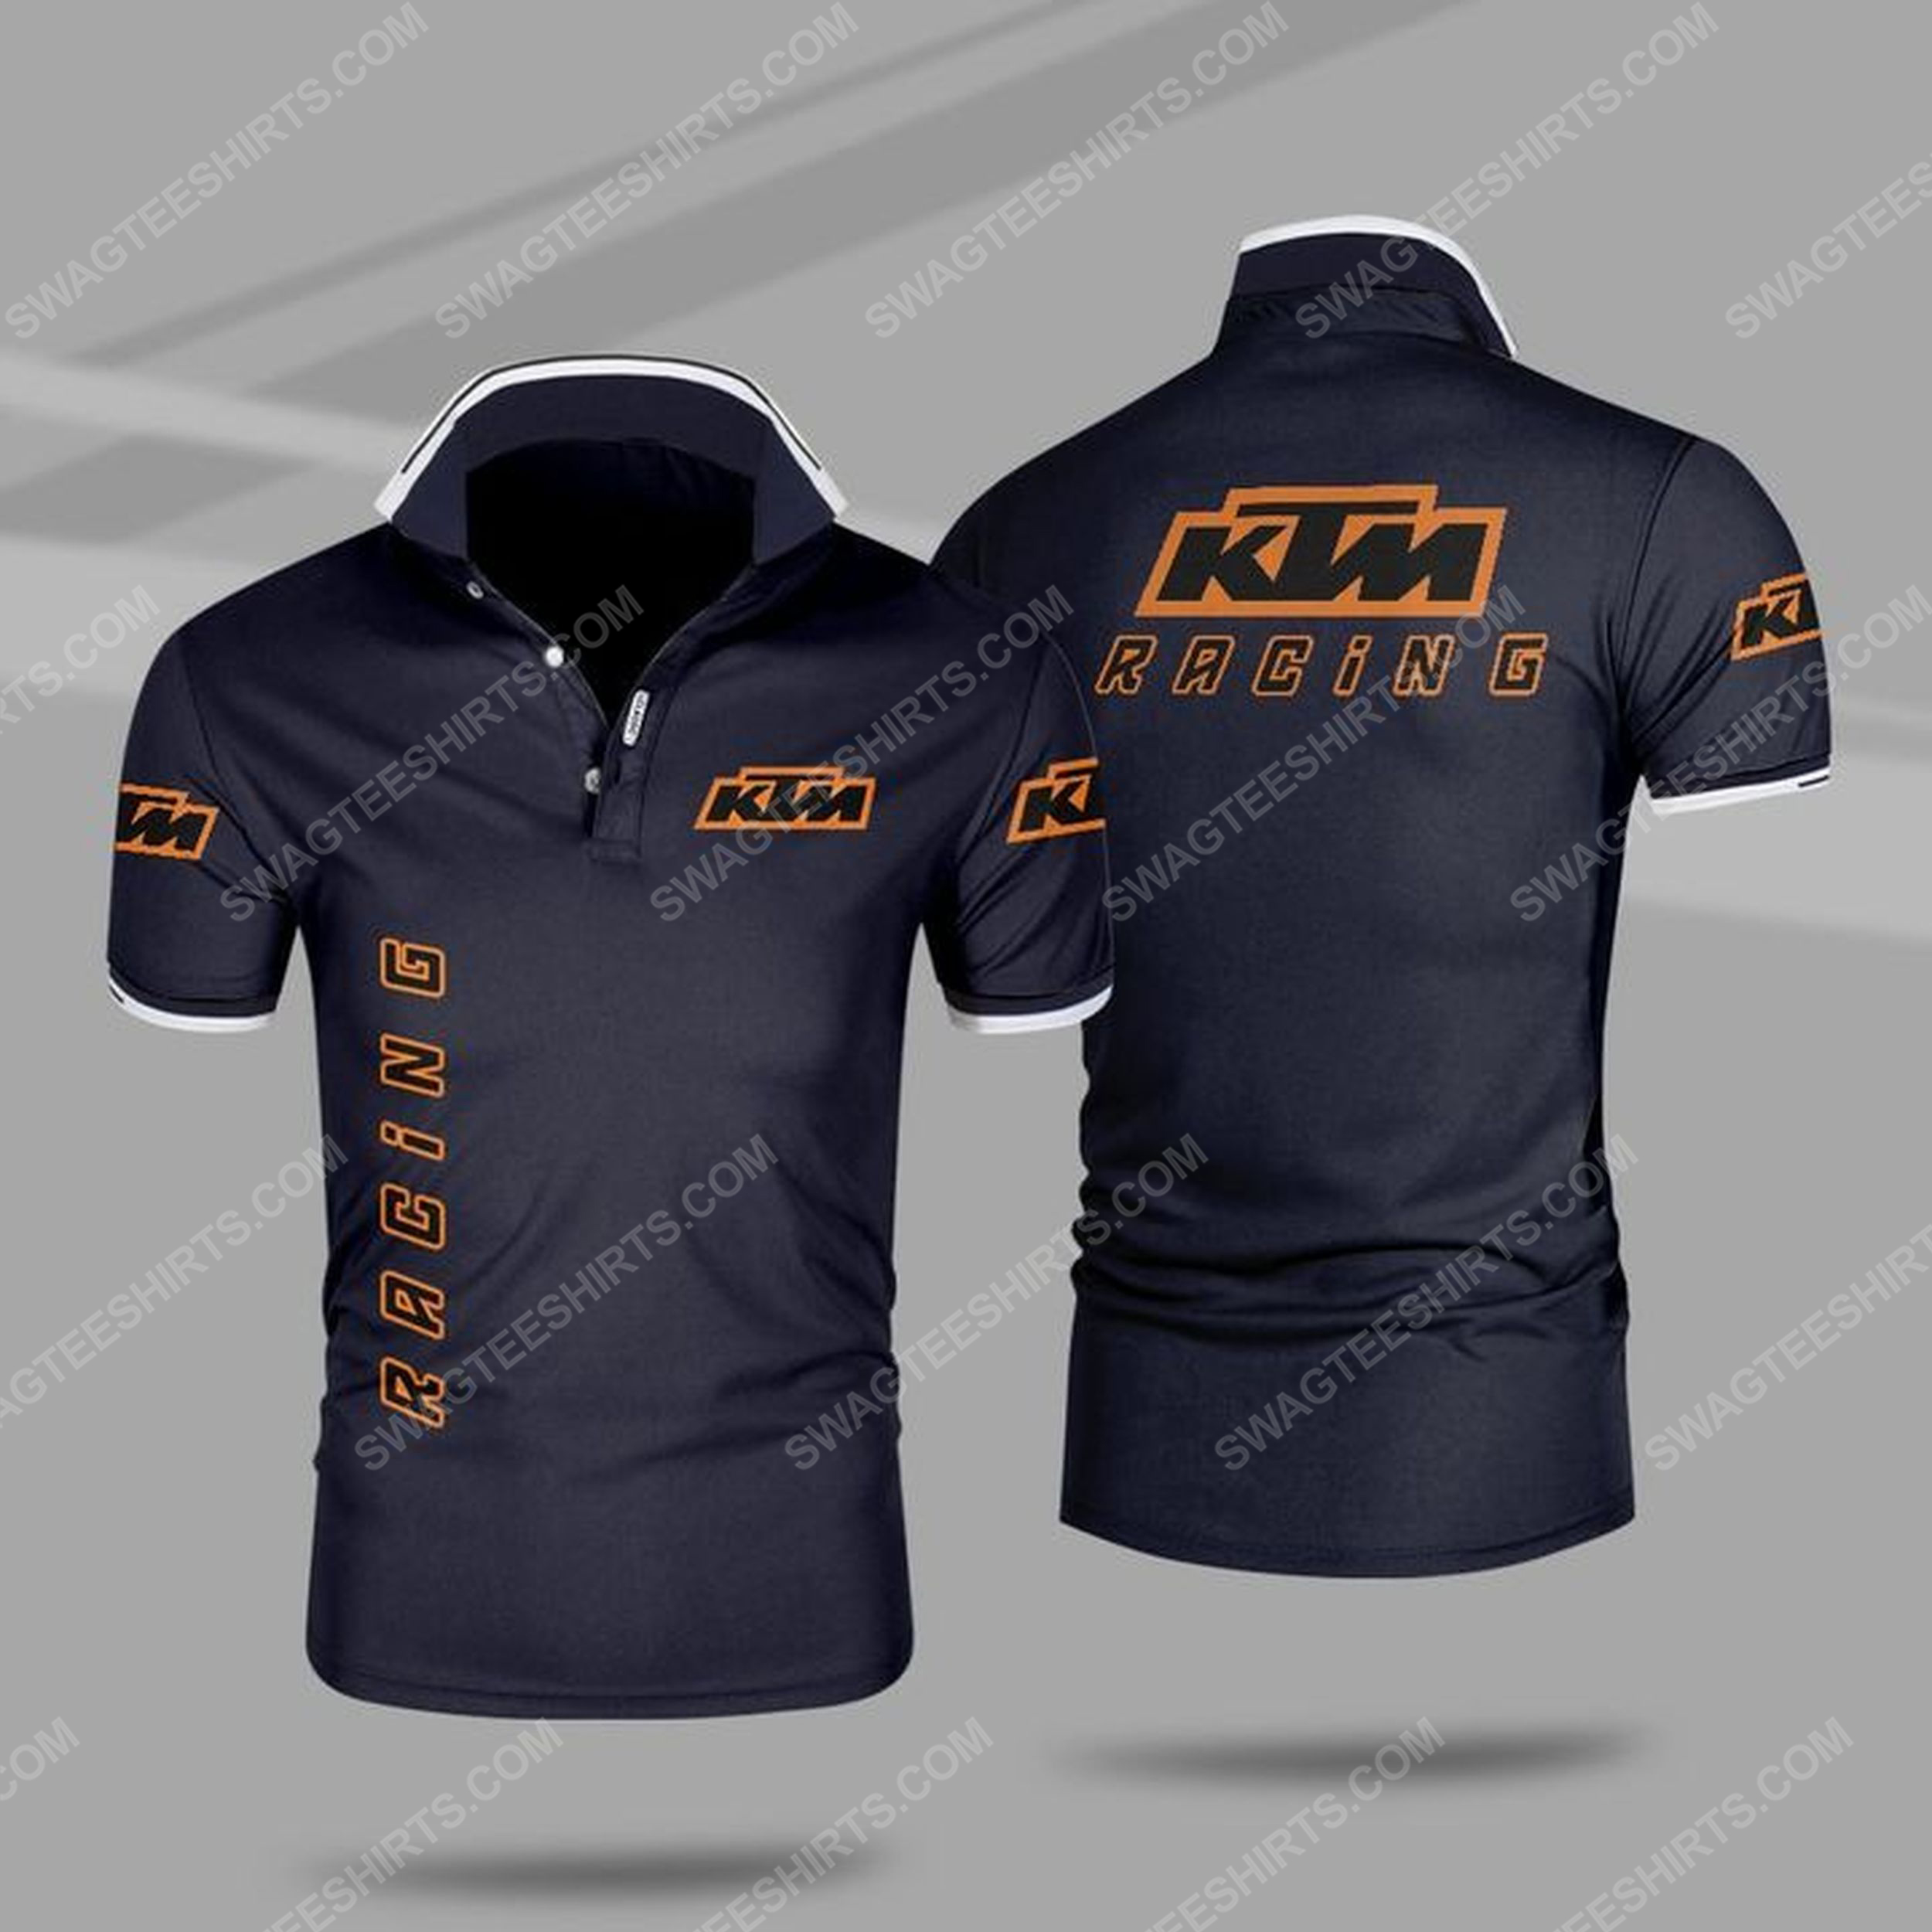 The ktm motorcycle racing all over print polo shirt - navy 1